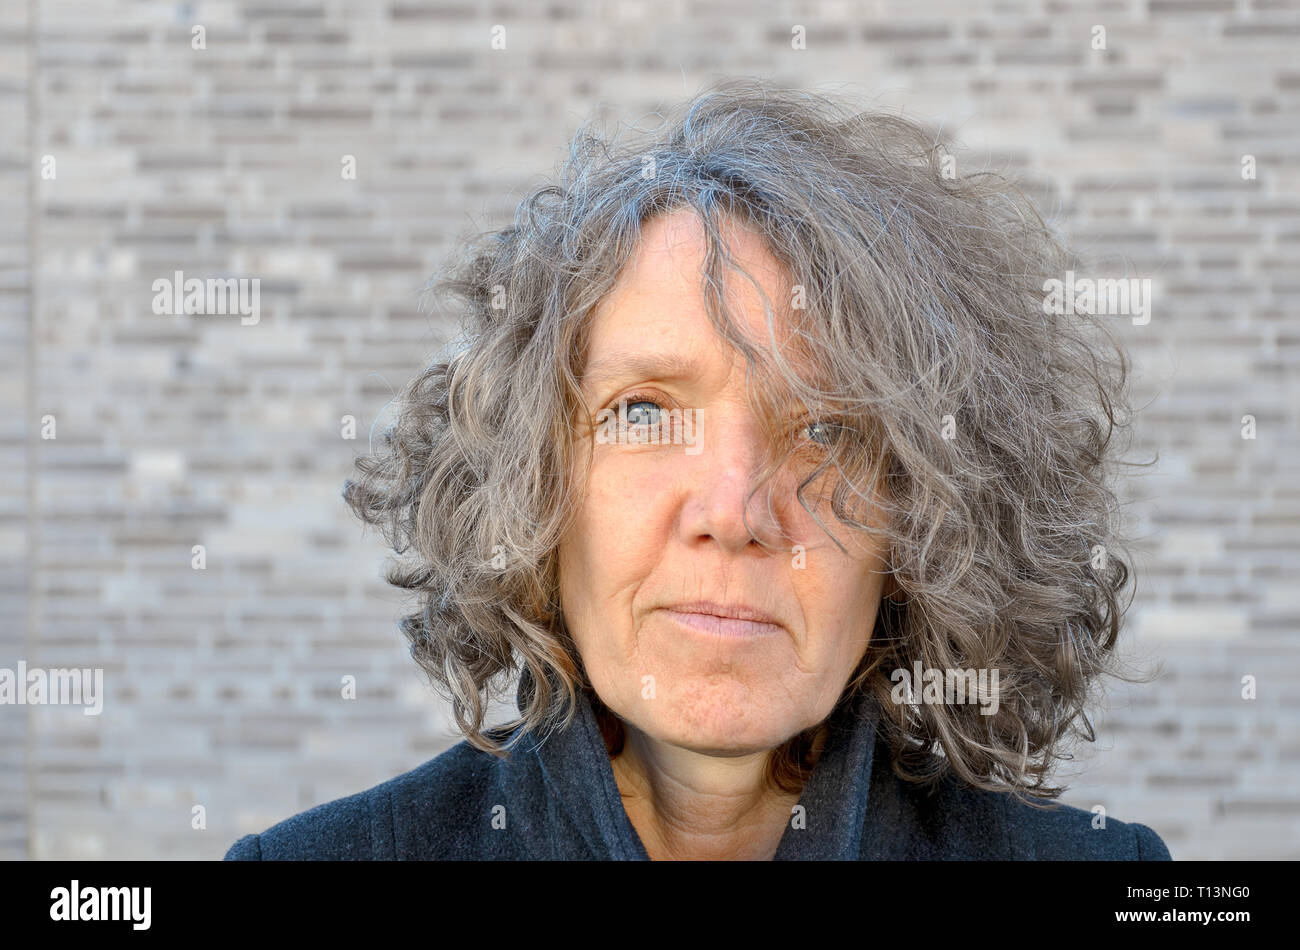 Portrait of an attractive middle-aged woman with tousled curly hair posing in front of a grey brick wall looking into the camera - Stock Image